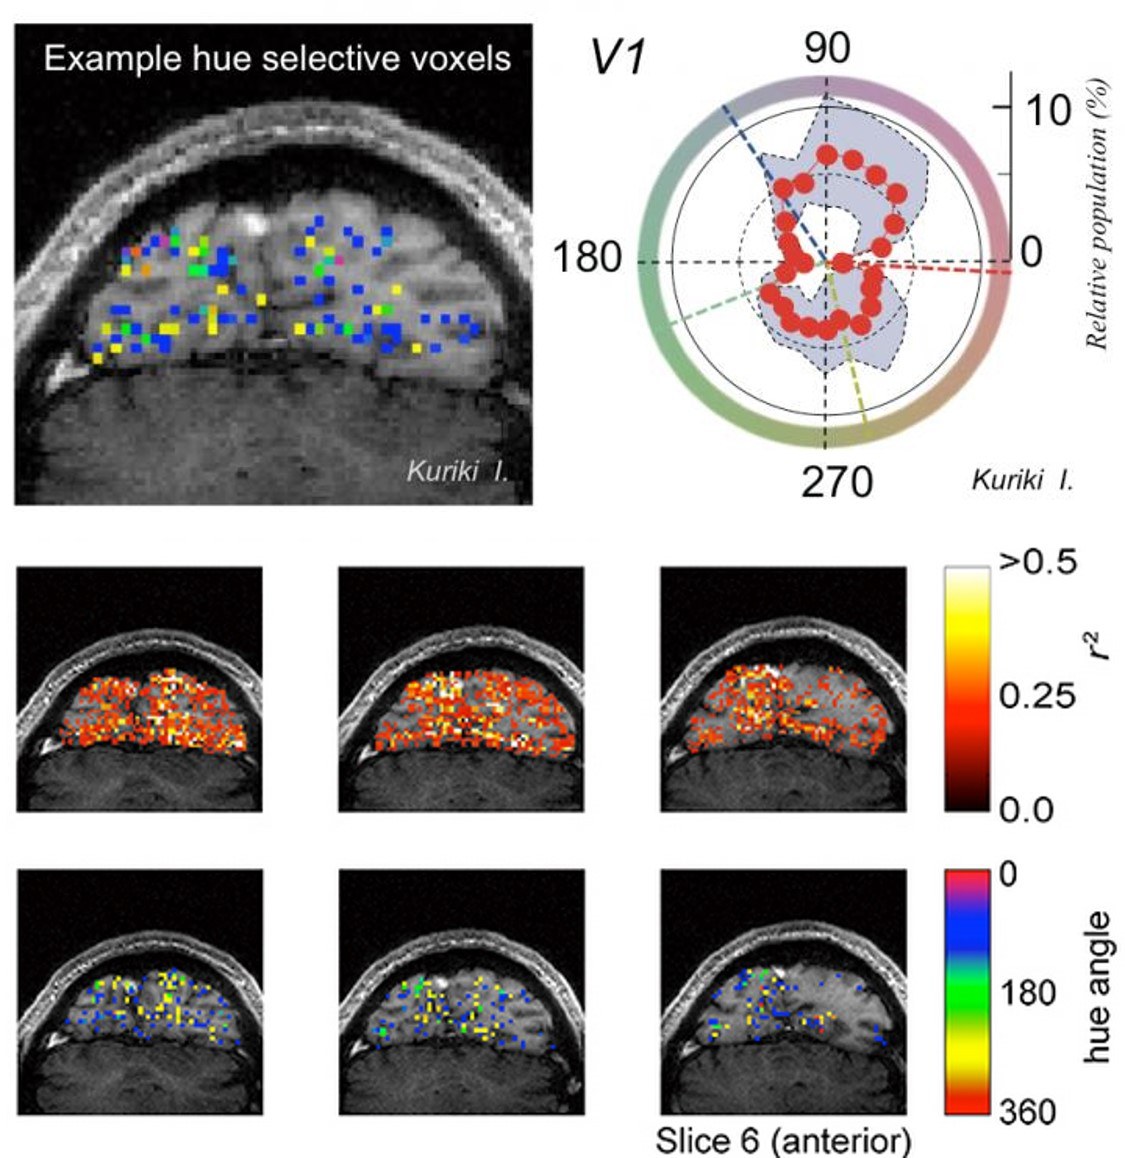 Human visual cortex holds neurons that selectively respond to intermediate colors